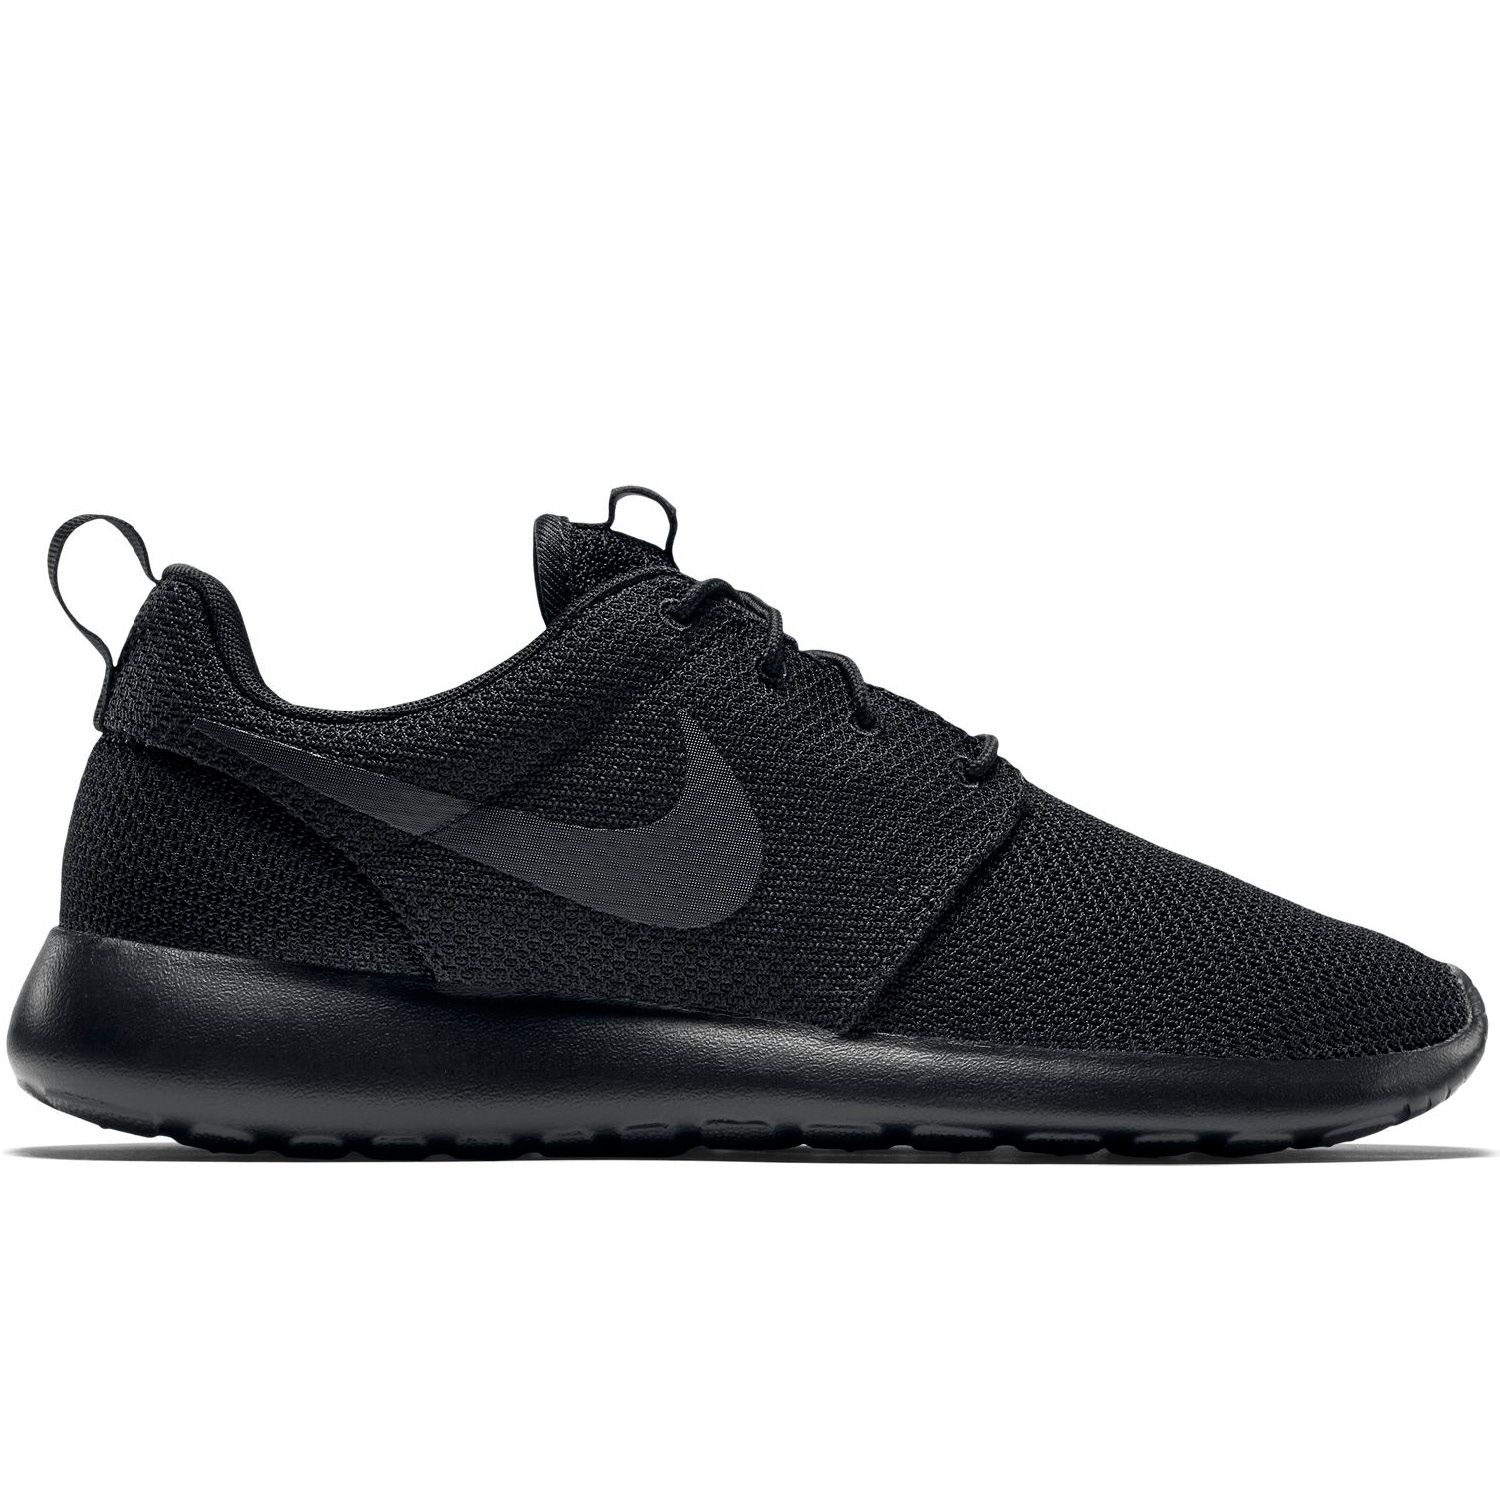 Nike Roshe One Black 511881 026